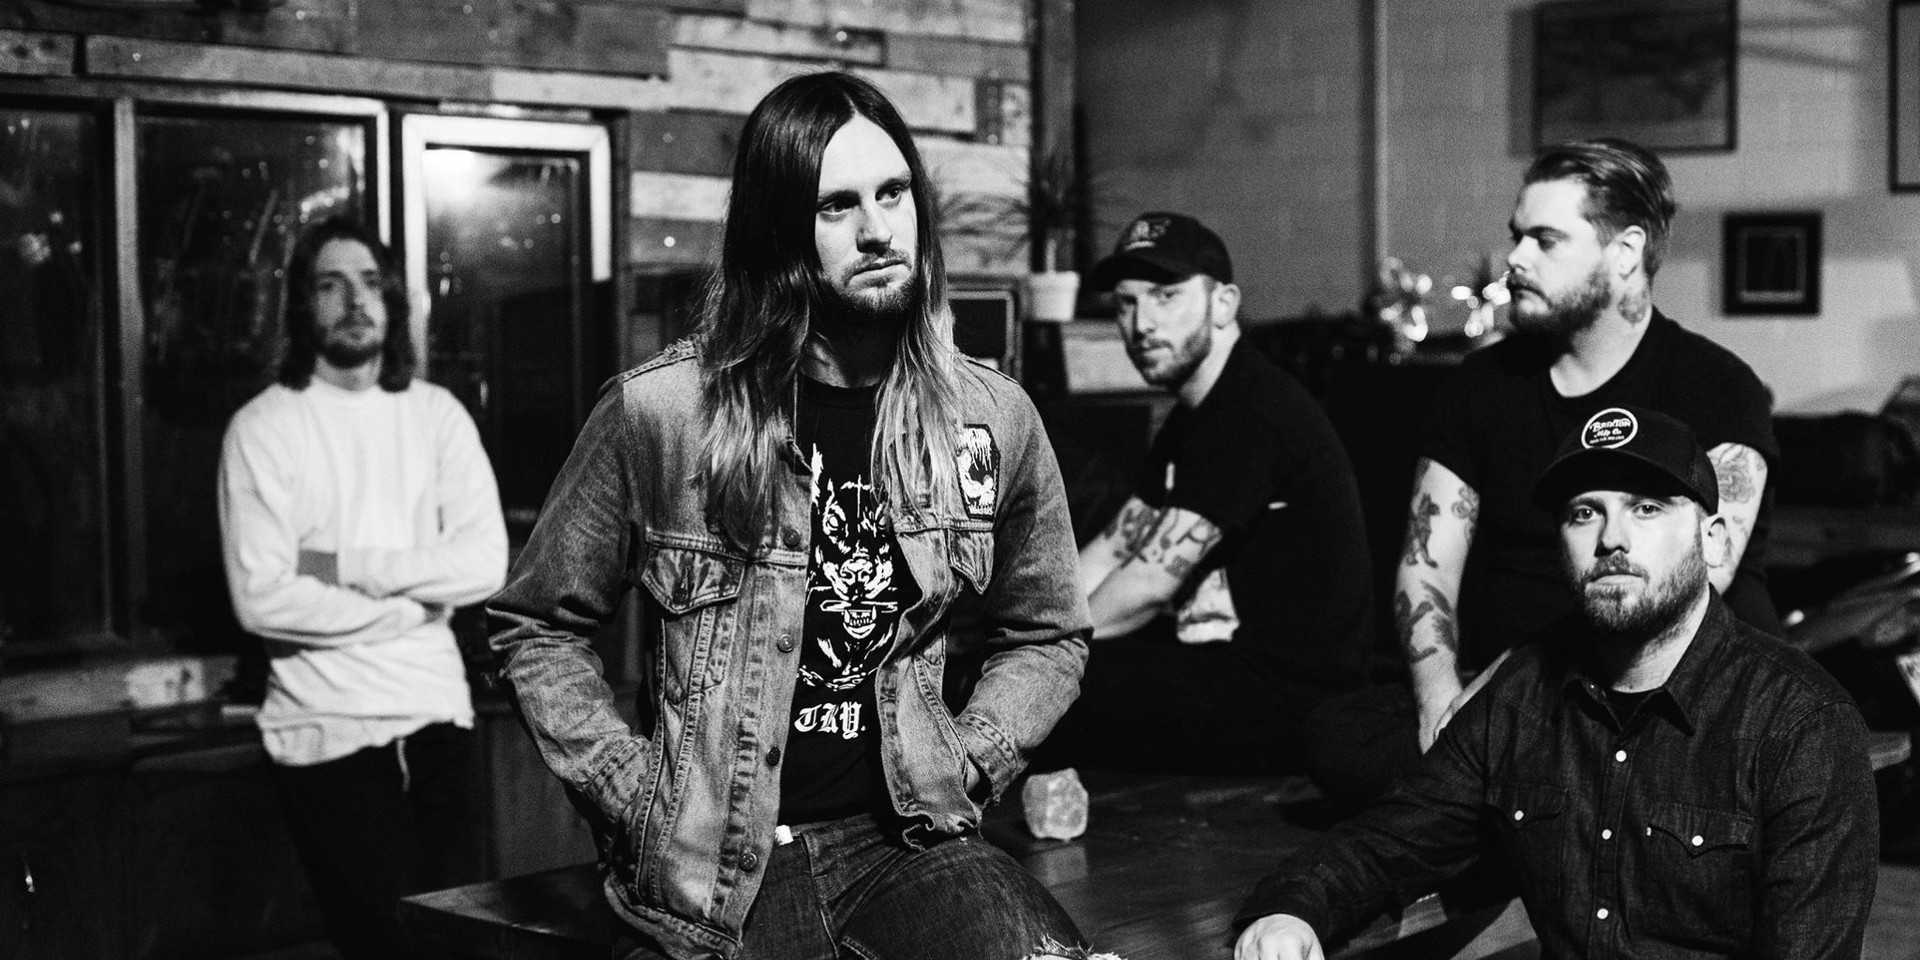 While She Sleeps to perform with Bring Me The Horizon in Singapore